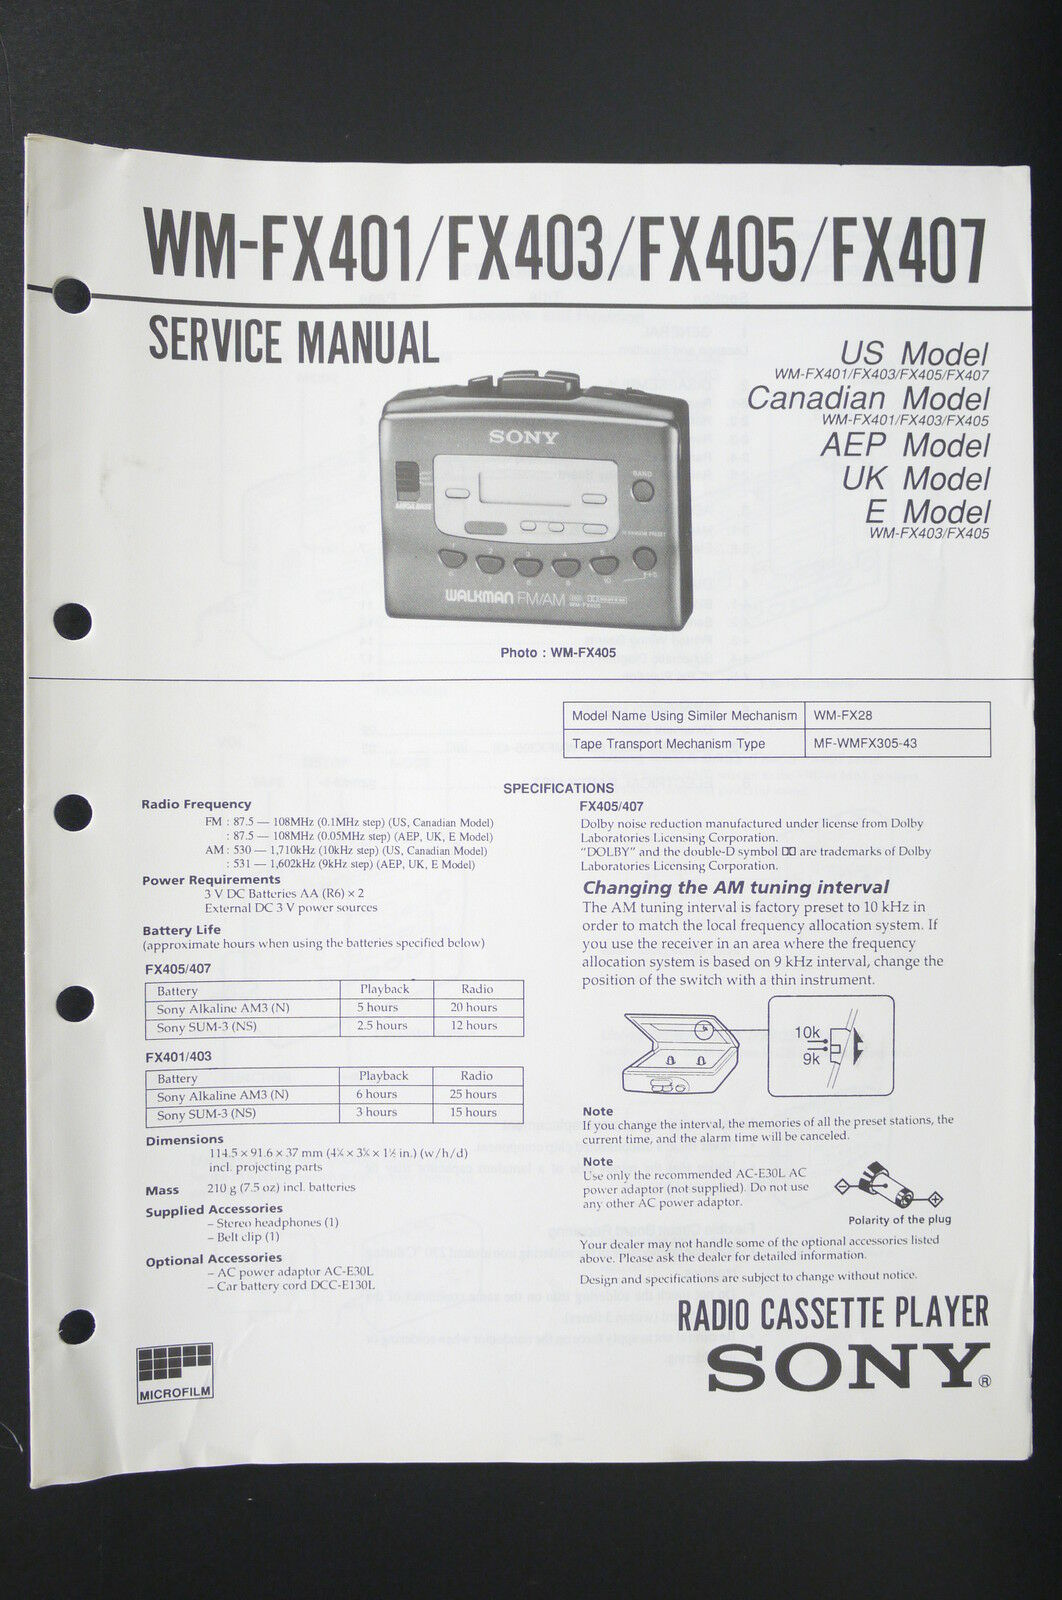 Sony Wm Fx401 Fx403 Fx405 Fx407 Walkman Service Manual Wiring Diagram 1 Of 1only Available